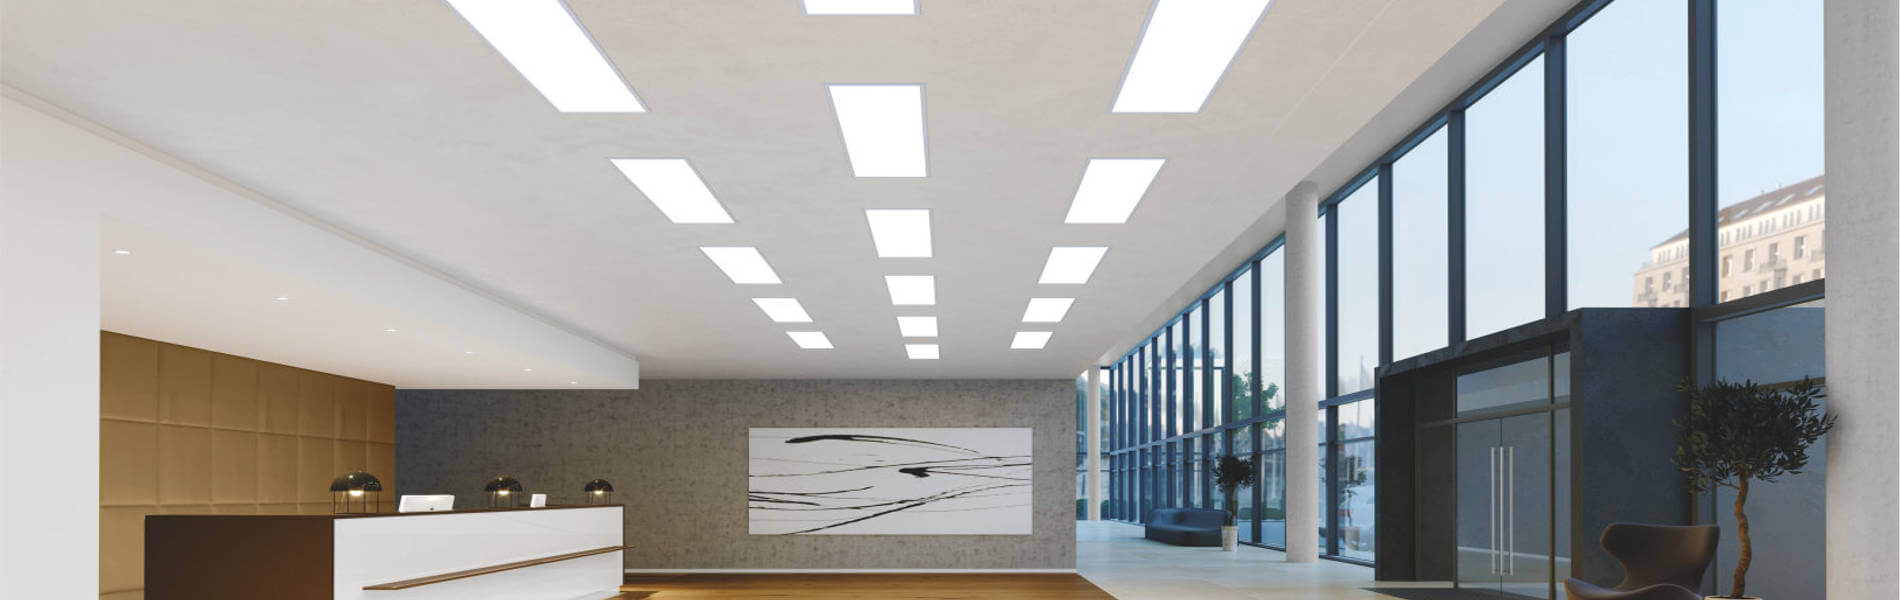 Ledvance is a world leader in innovative lighting products as well as intelligent and connected lighting solutions. © LEDVANCE & digital-supply-chain-Case-LEDvance | logistik aktuell